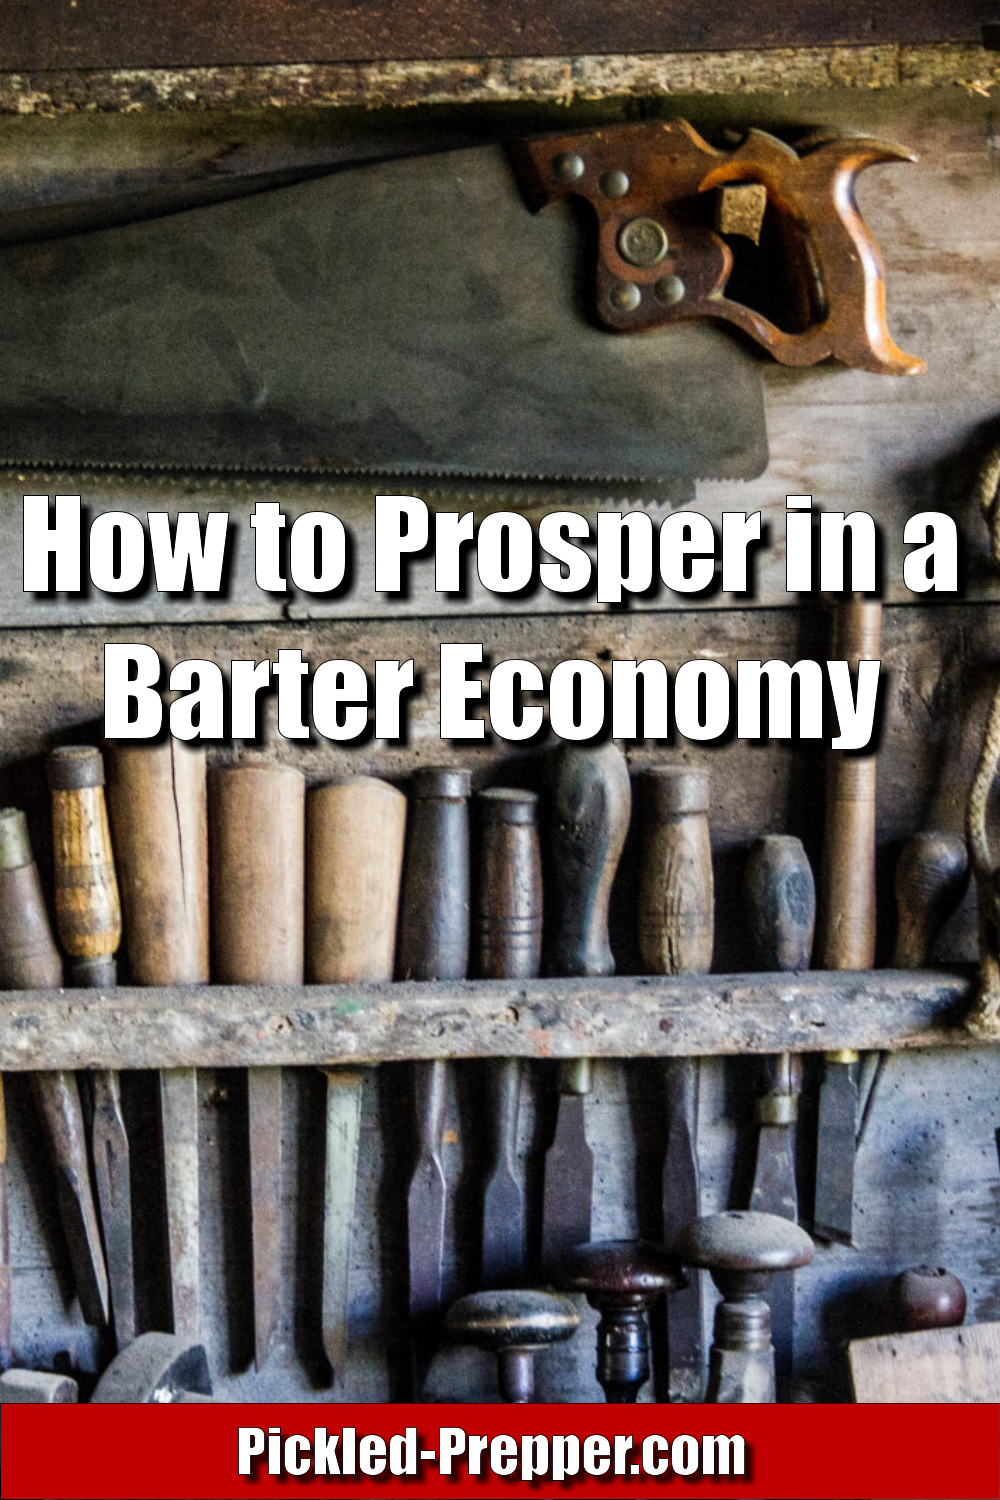 How to Prosper in a Barter Economy